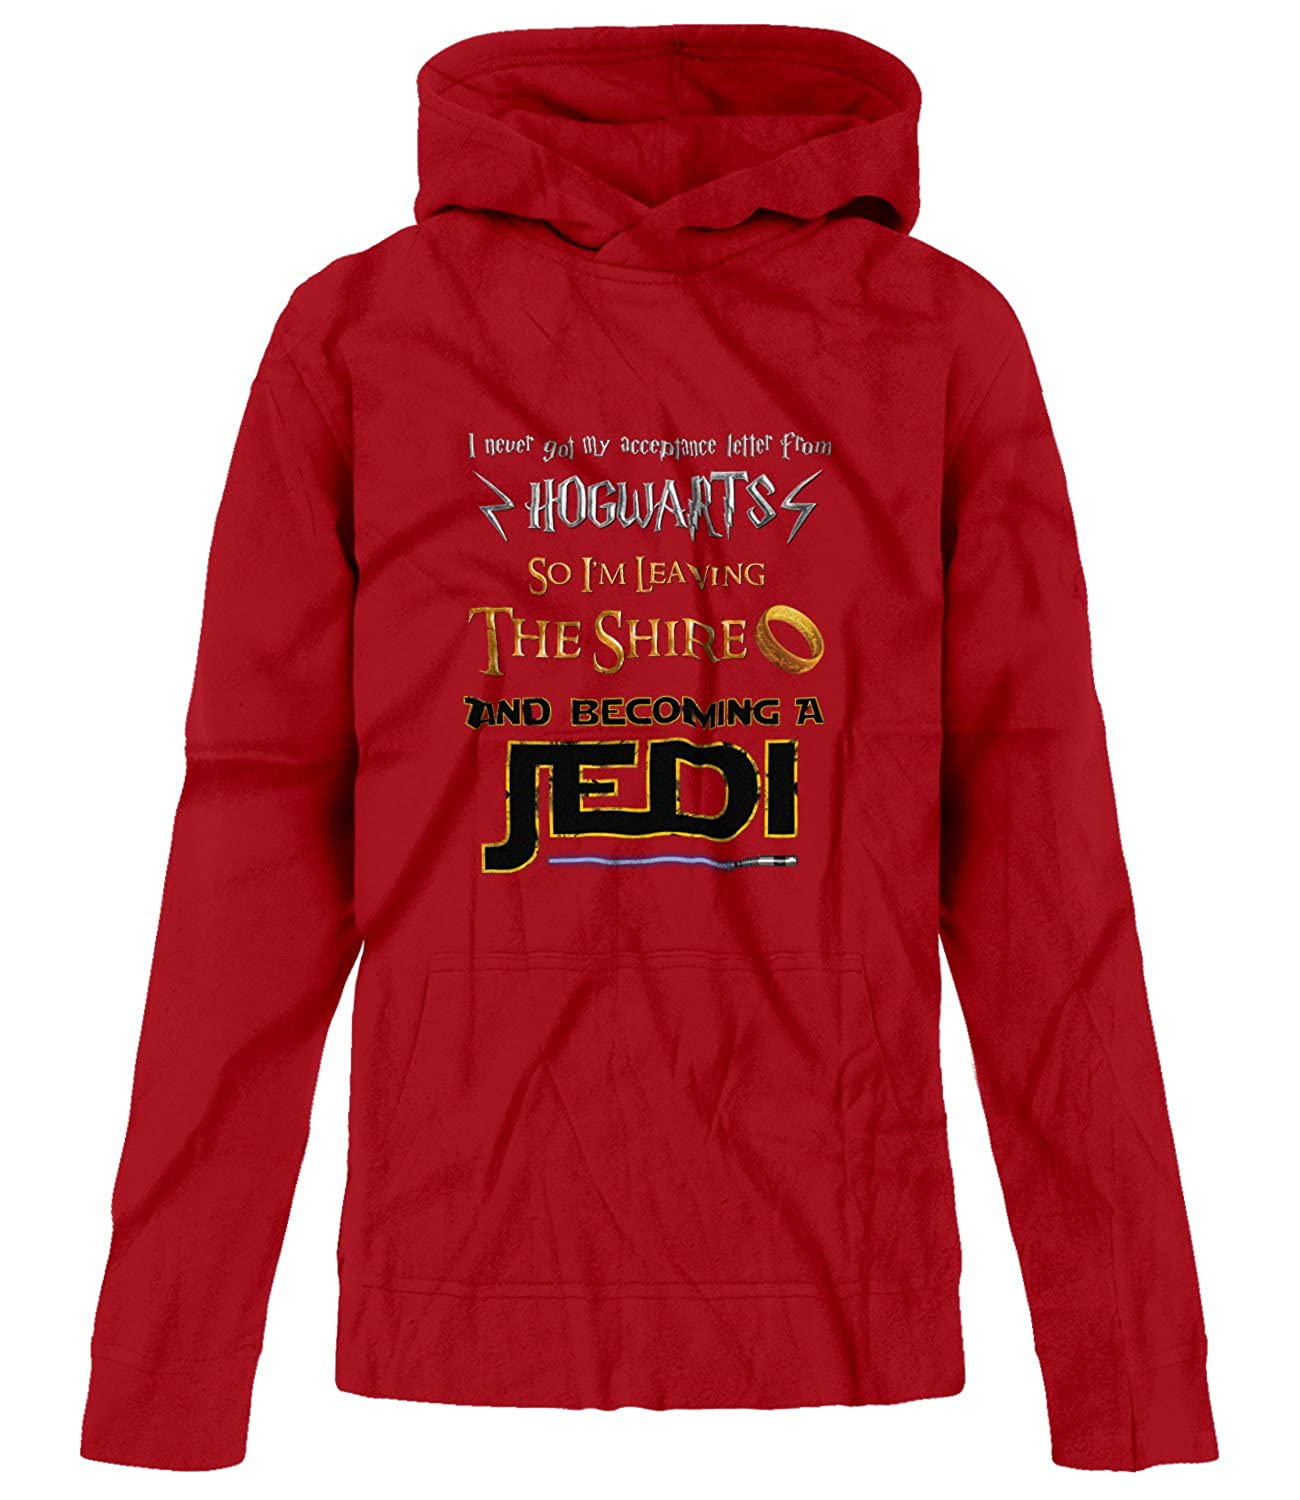 BSW Youth Girls Harry Potter Lord of The Rings Star Wars Jedi Fan Hoodie